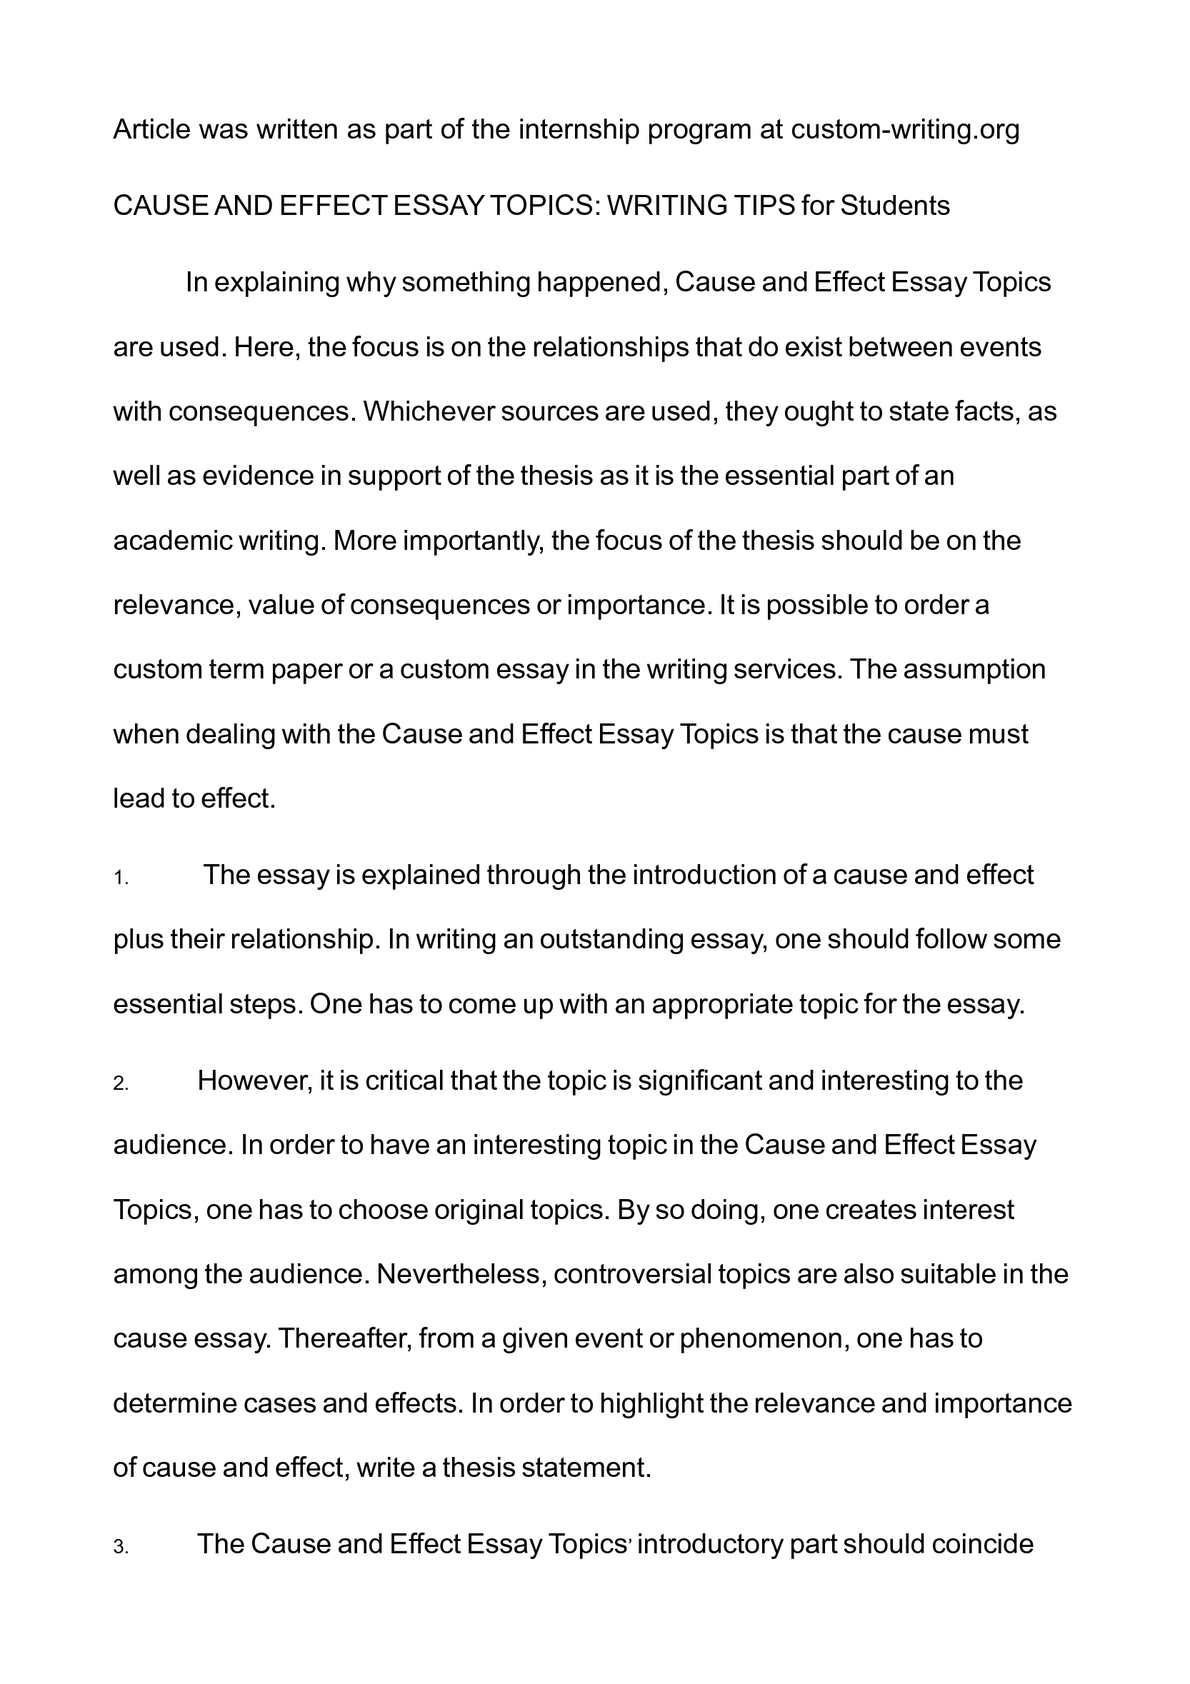 002 Essay Example P1 Cause And Effect Exceptional Topics For College Students High School Basketball Full